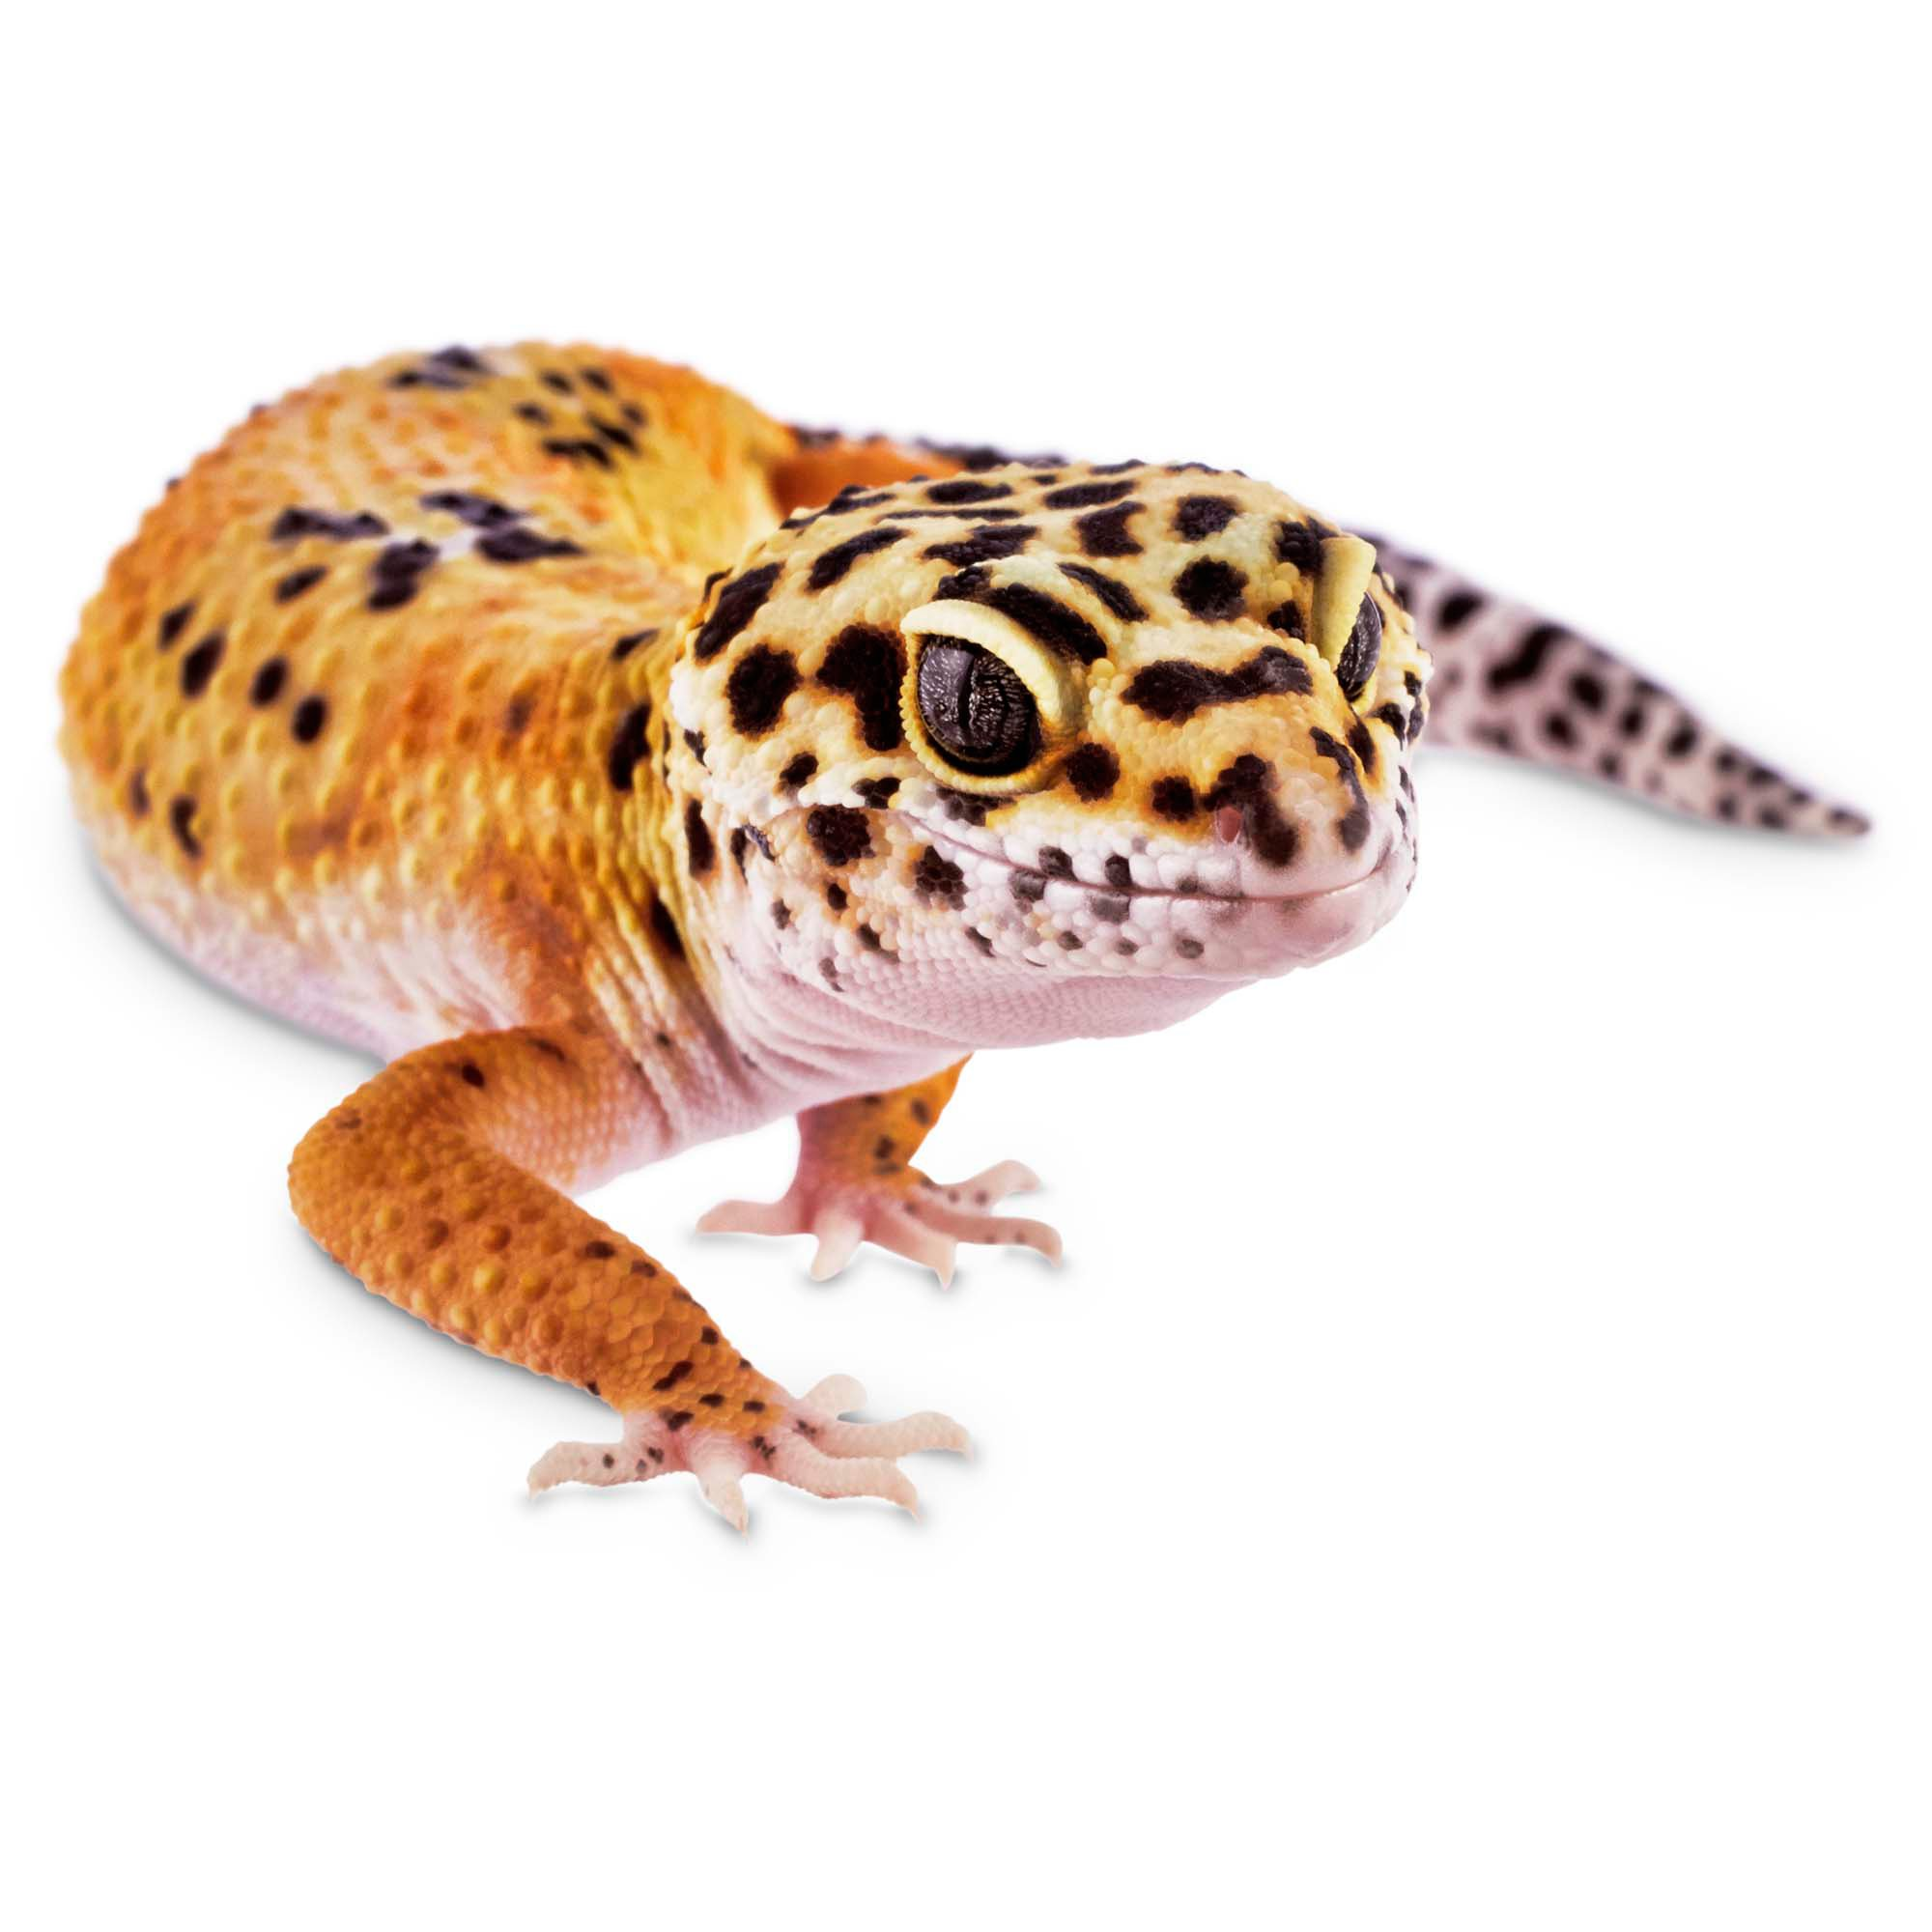 Leopard Geckos for Sale | Buy Pet Leopard Geckos | Petco